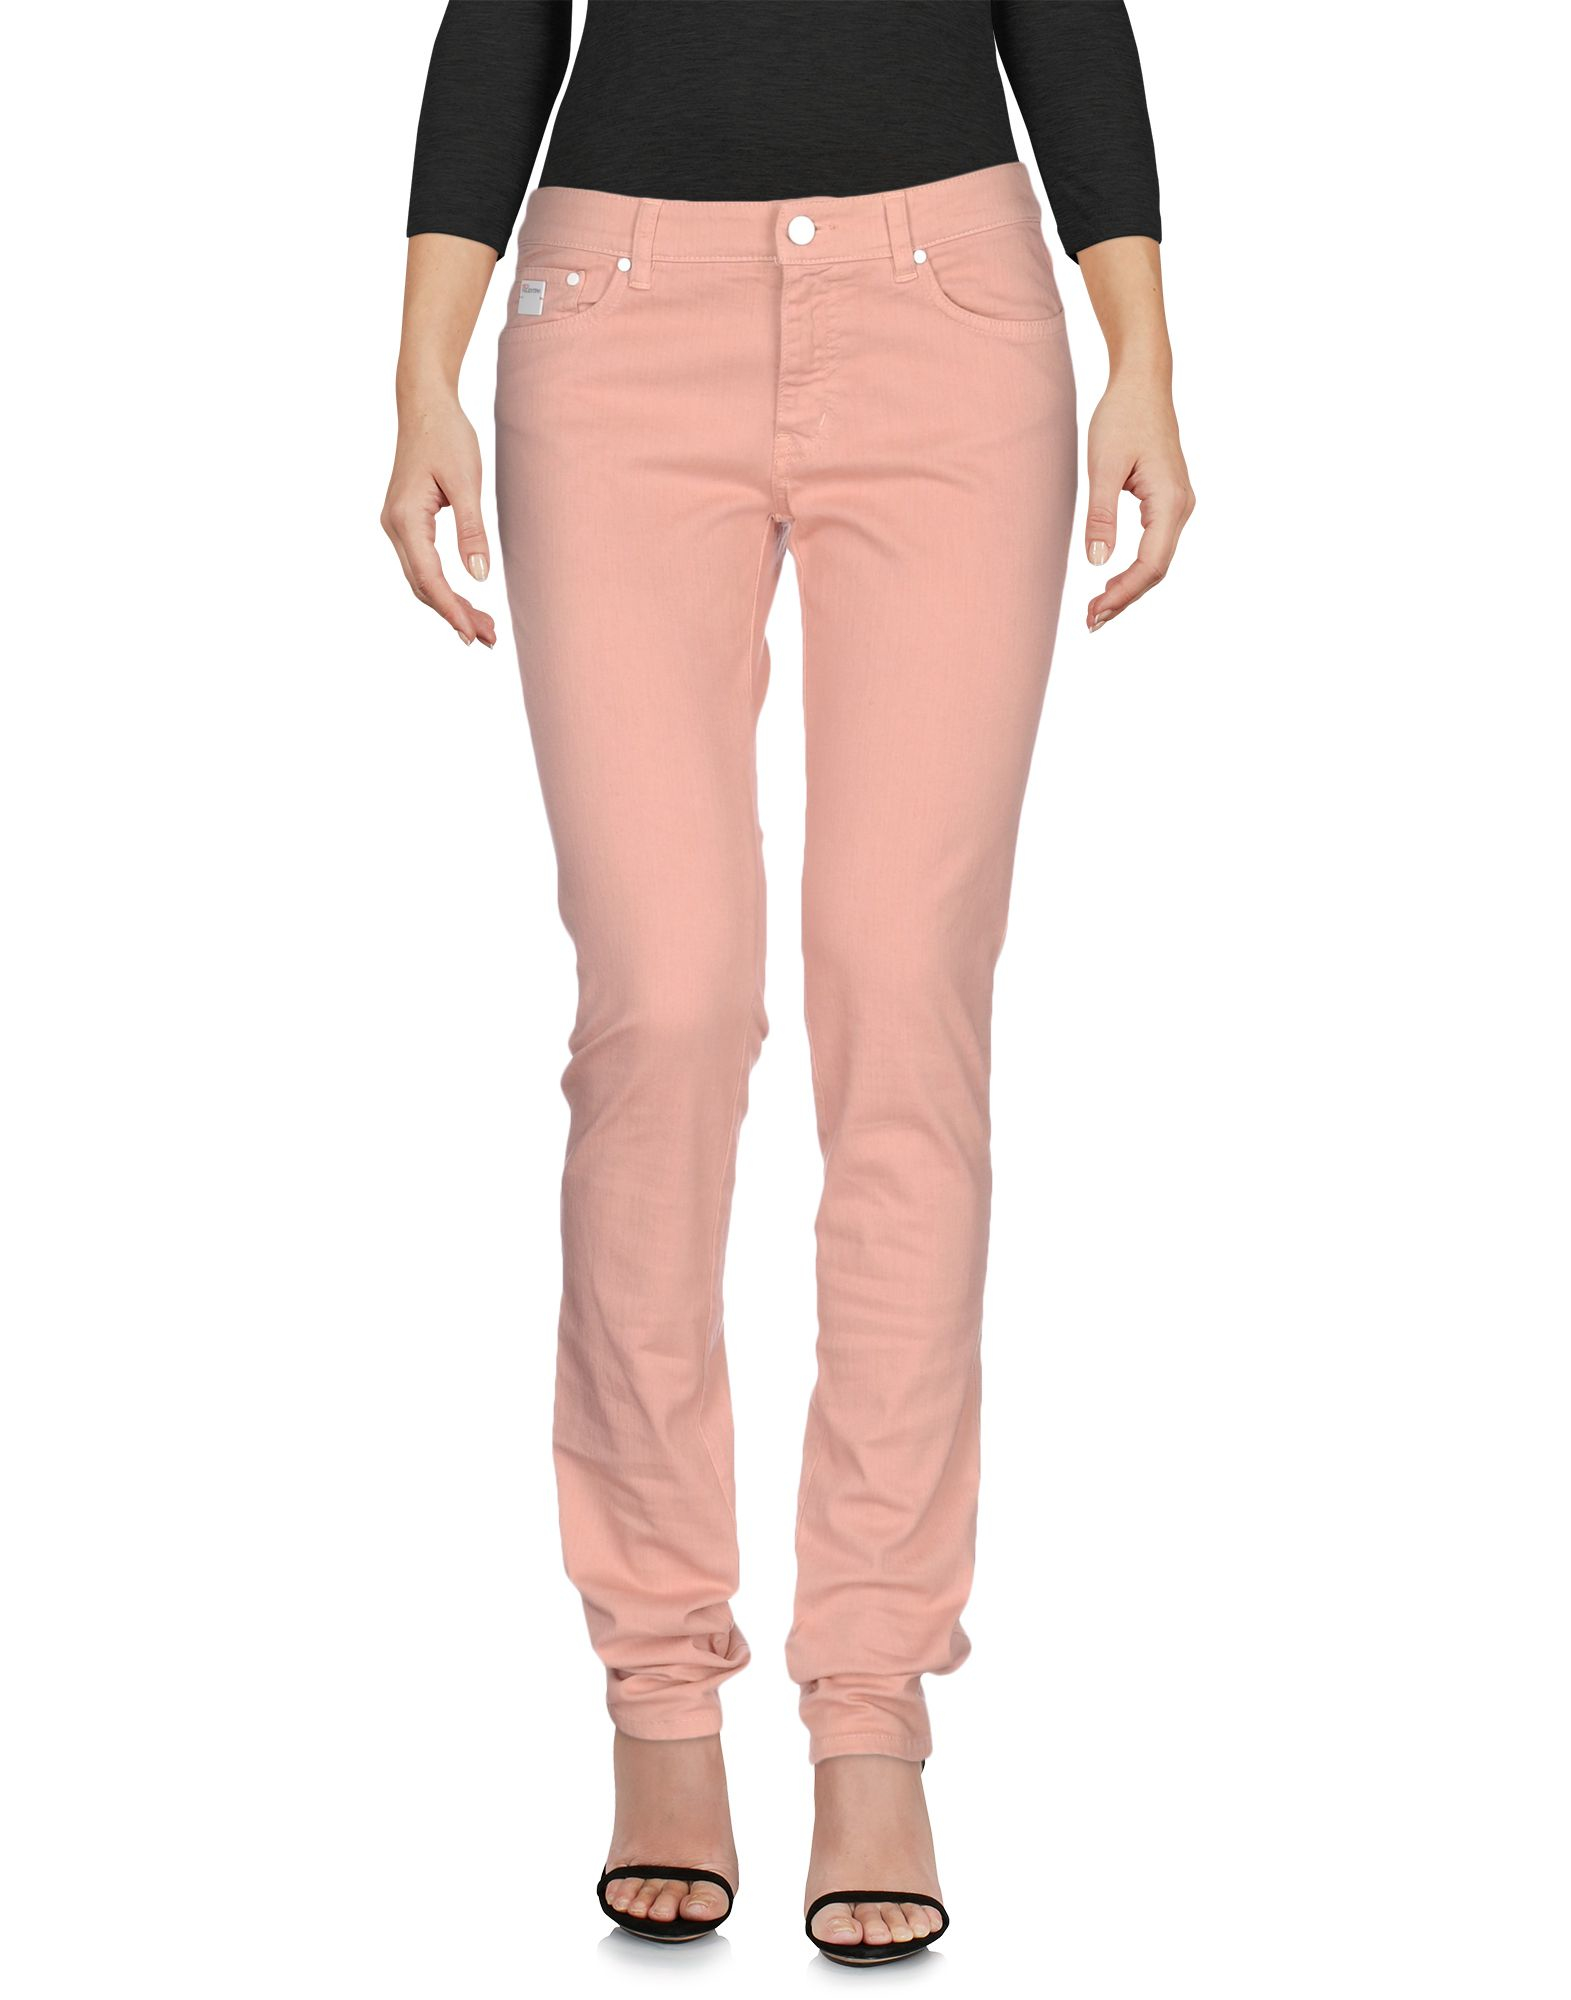 Red valentino Denim Trousers in Pink | Lyst